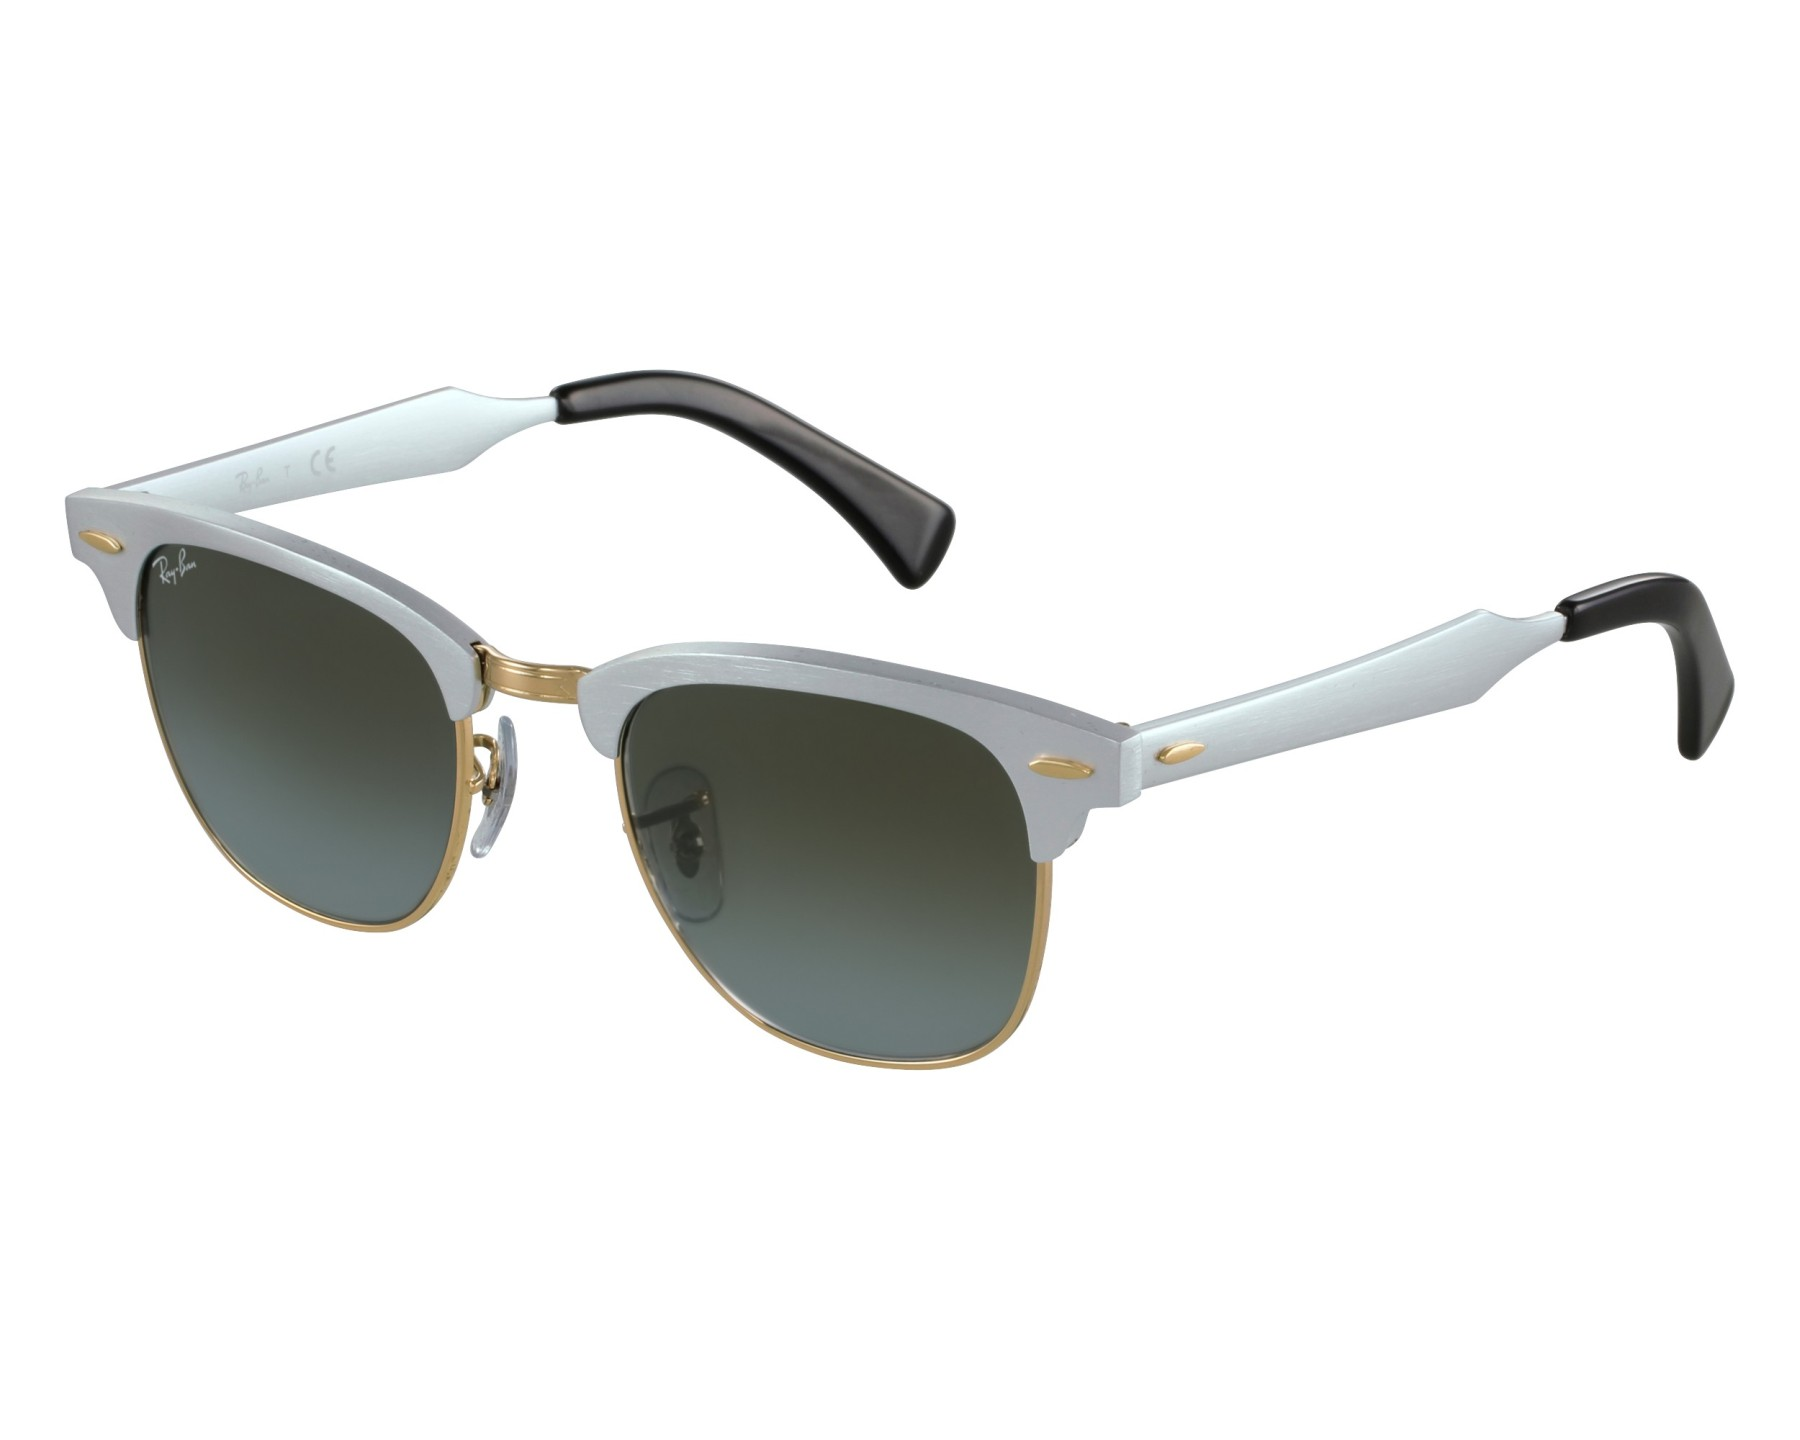 82c2637093 Sunglasses Ray-Ban RB-3507 137 9J 49-21 Silver Gold front